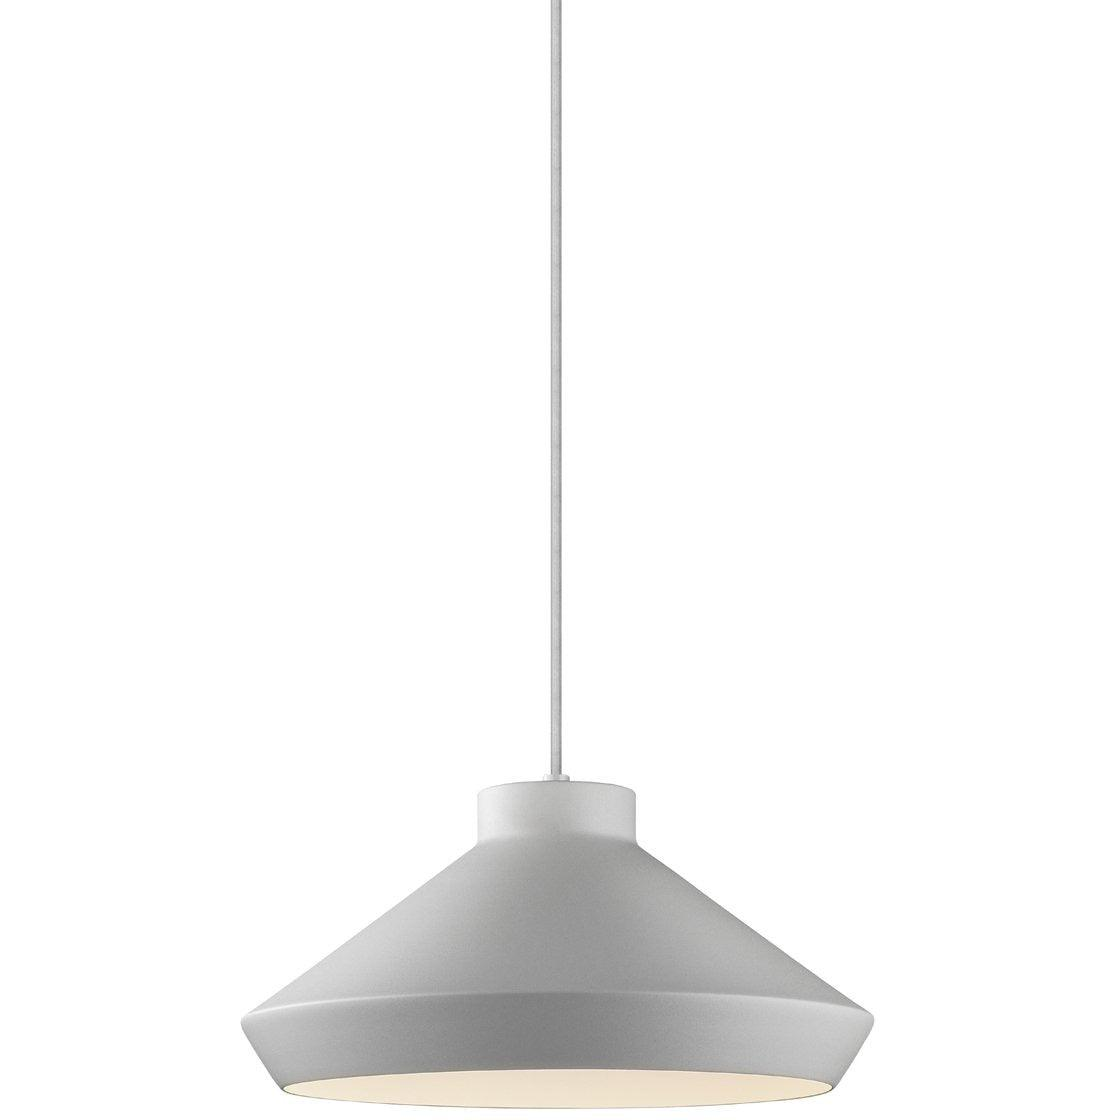 Sonneman - A Way of Light - 2752.16-E - One Light Pendant - Koma - Bright Satin Aluminum